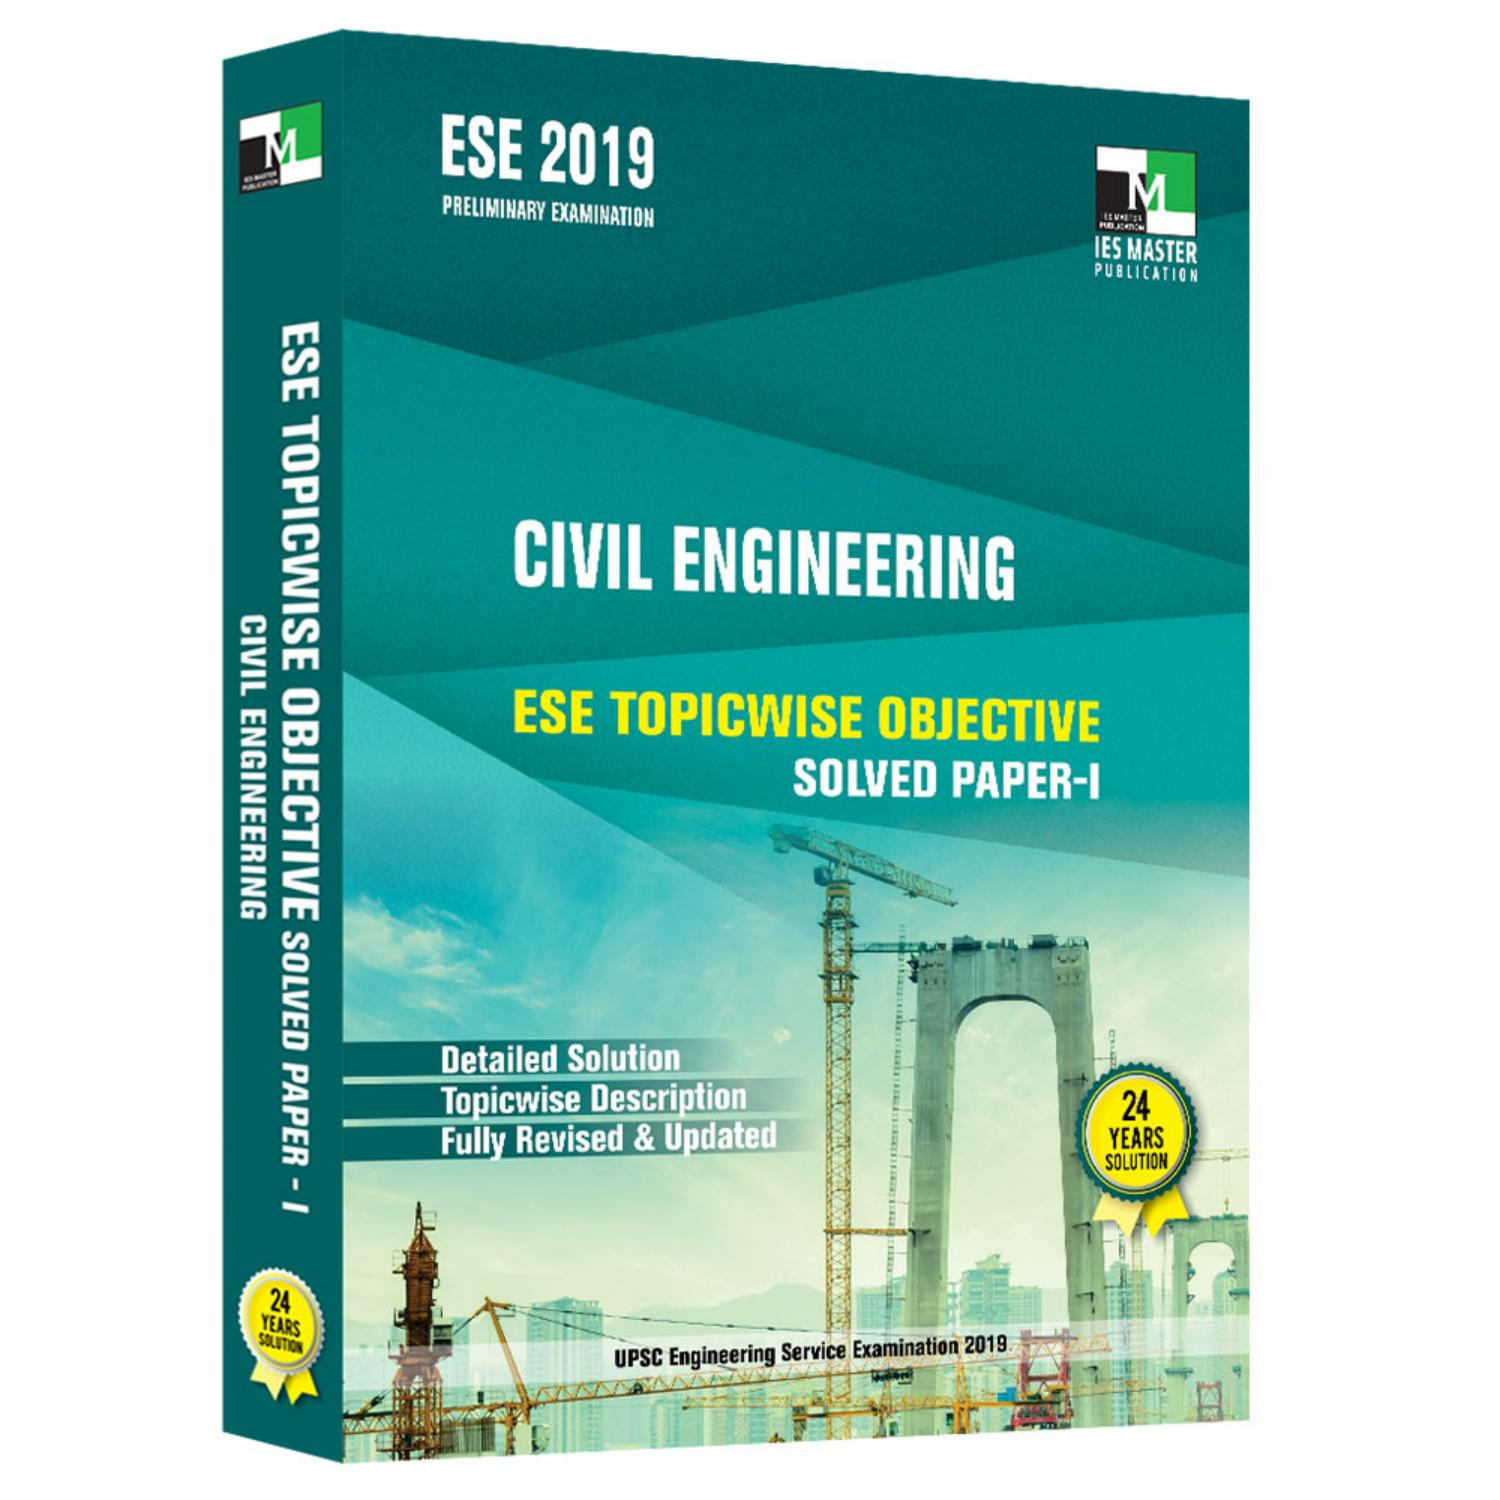 Ese 2019 civil engineering ese topicwise objective solved paper 1 by